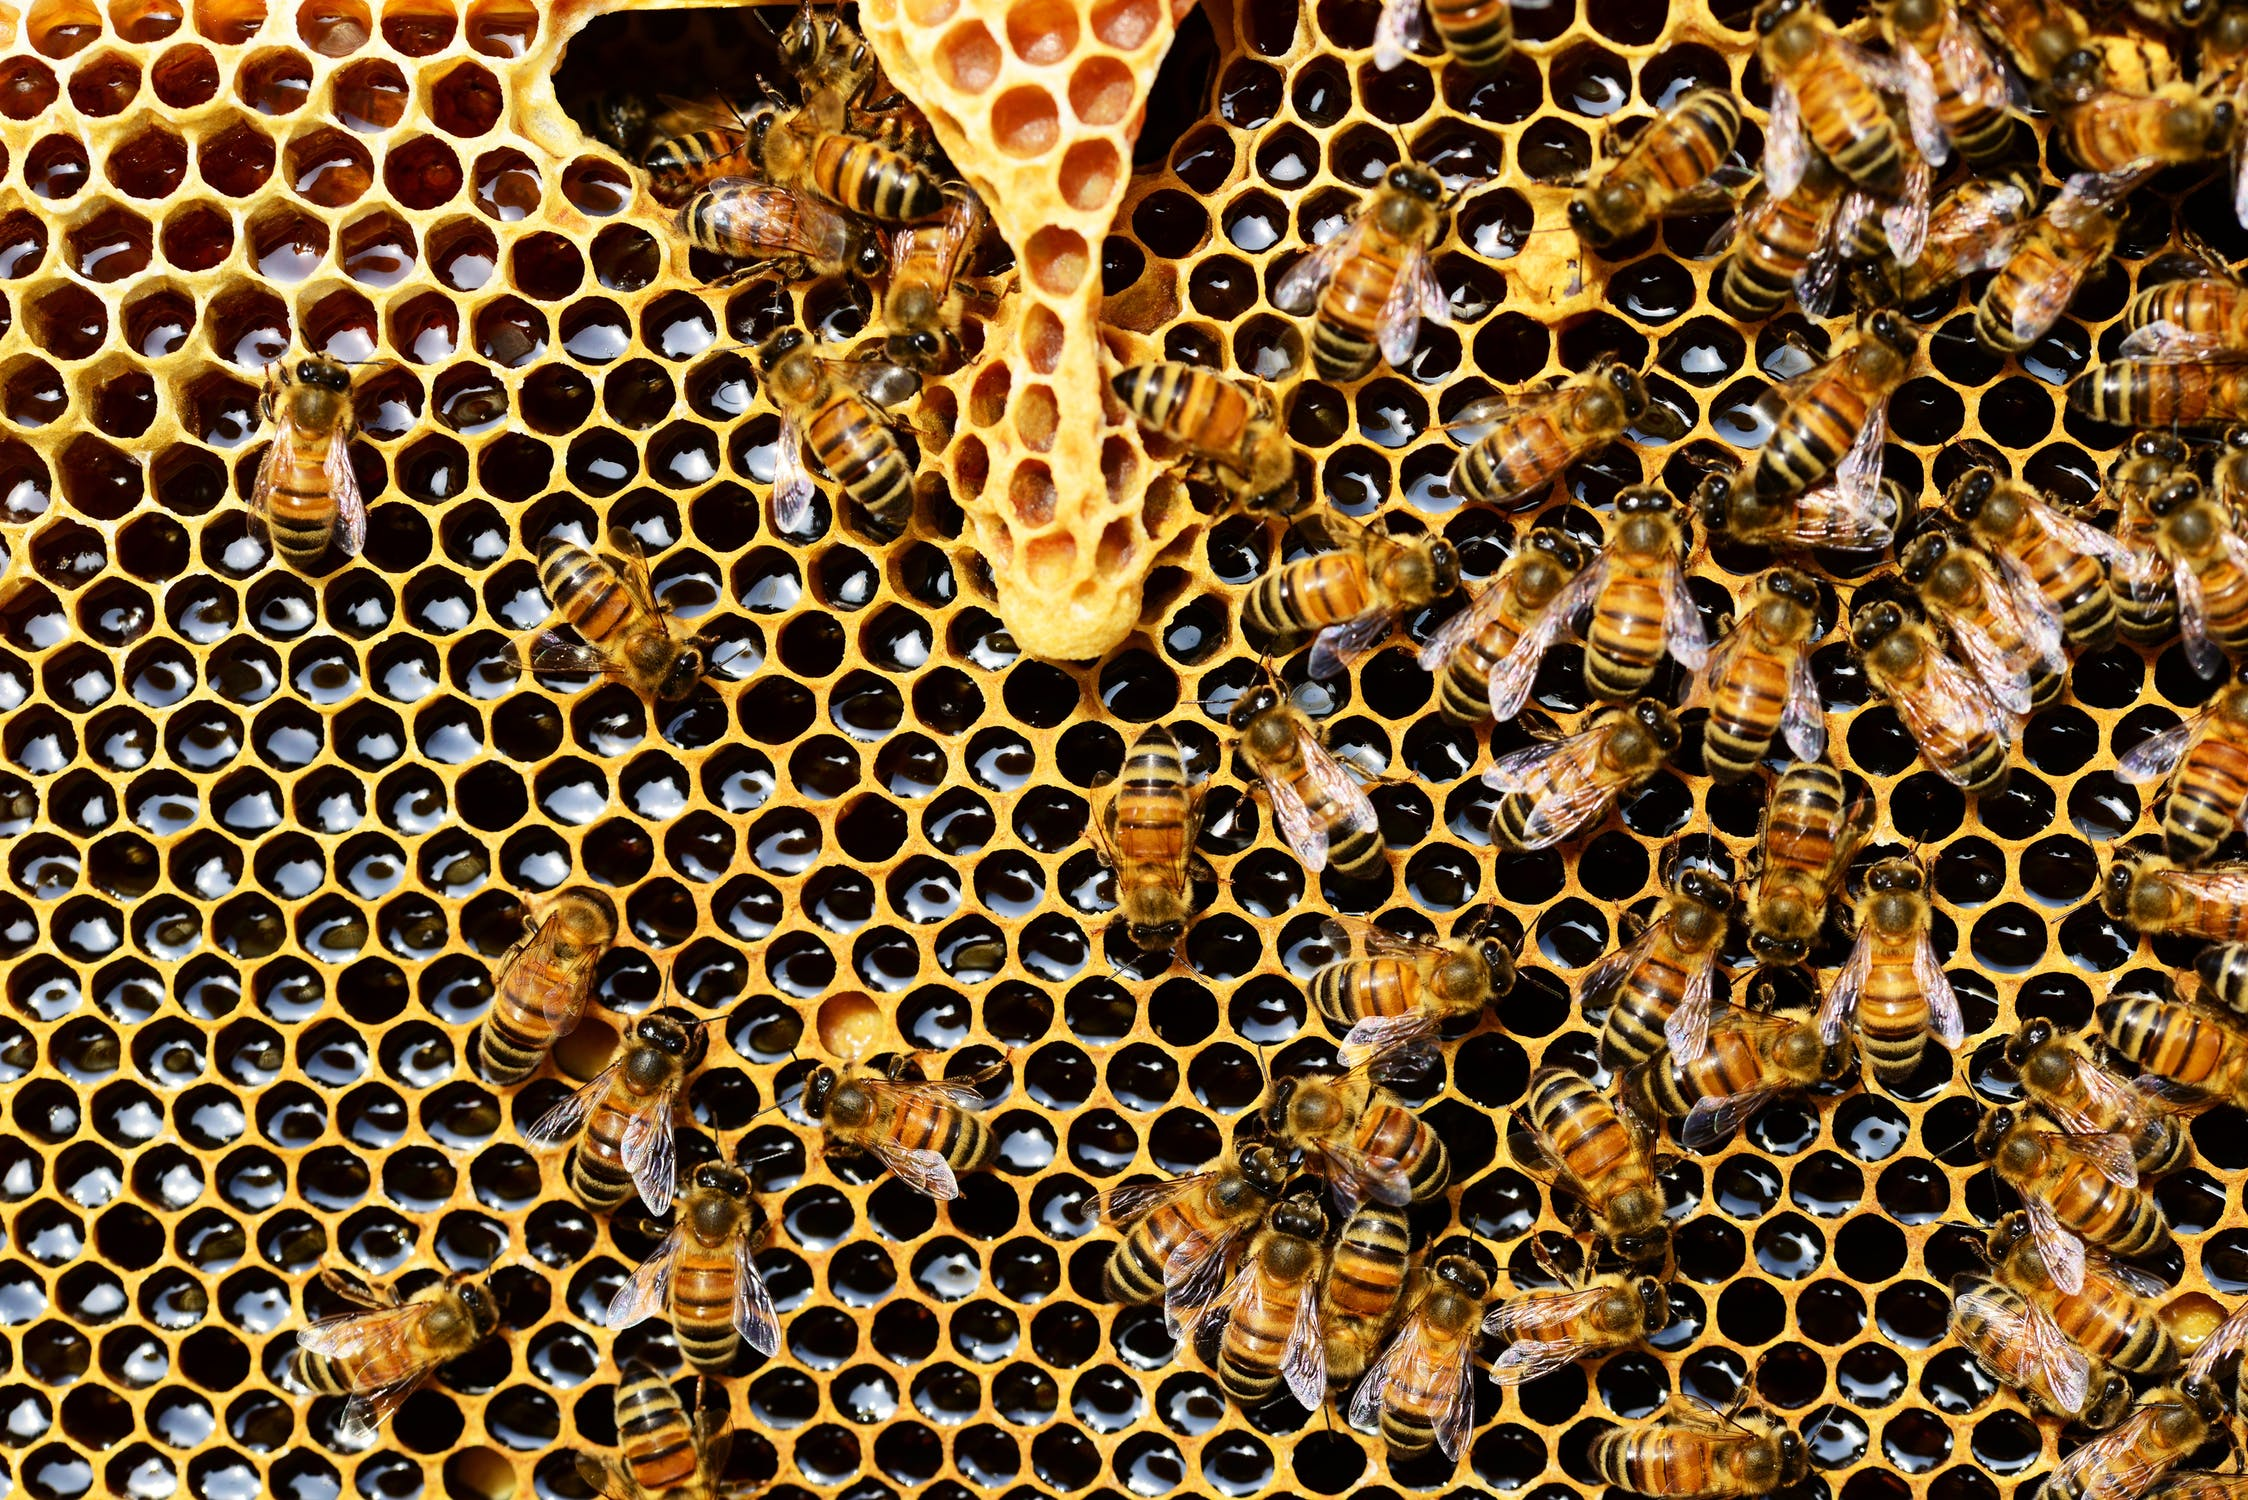 Bees crawling over honeycomb